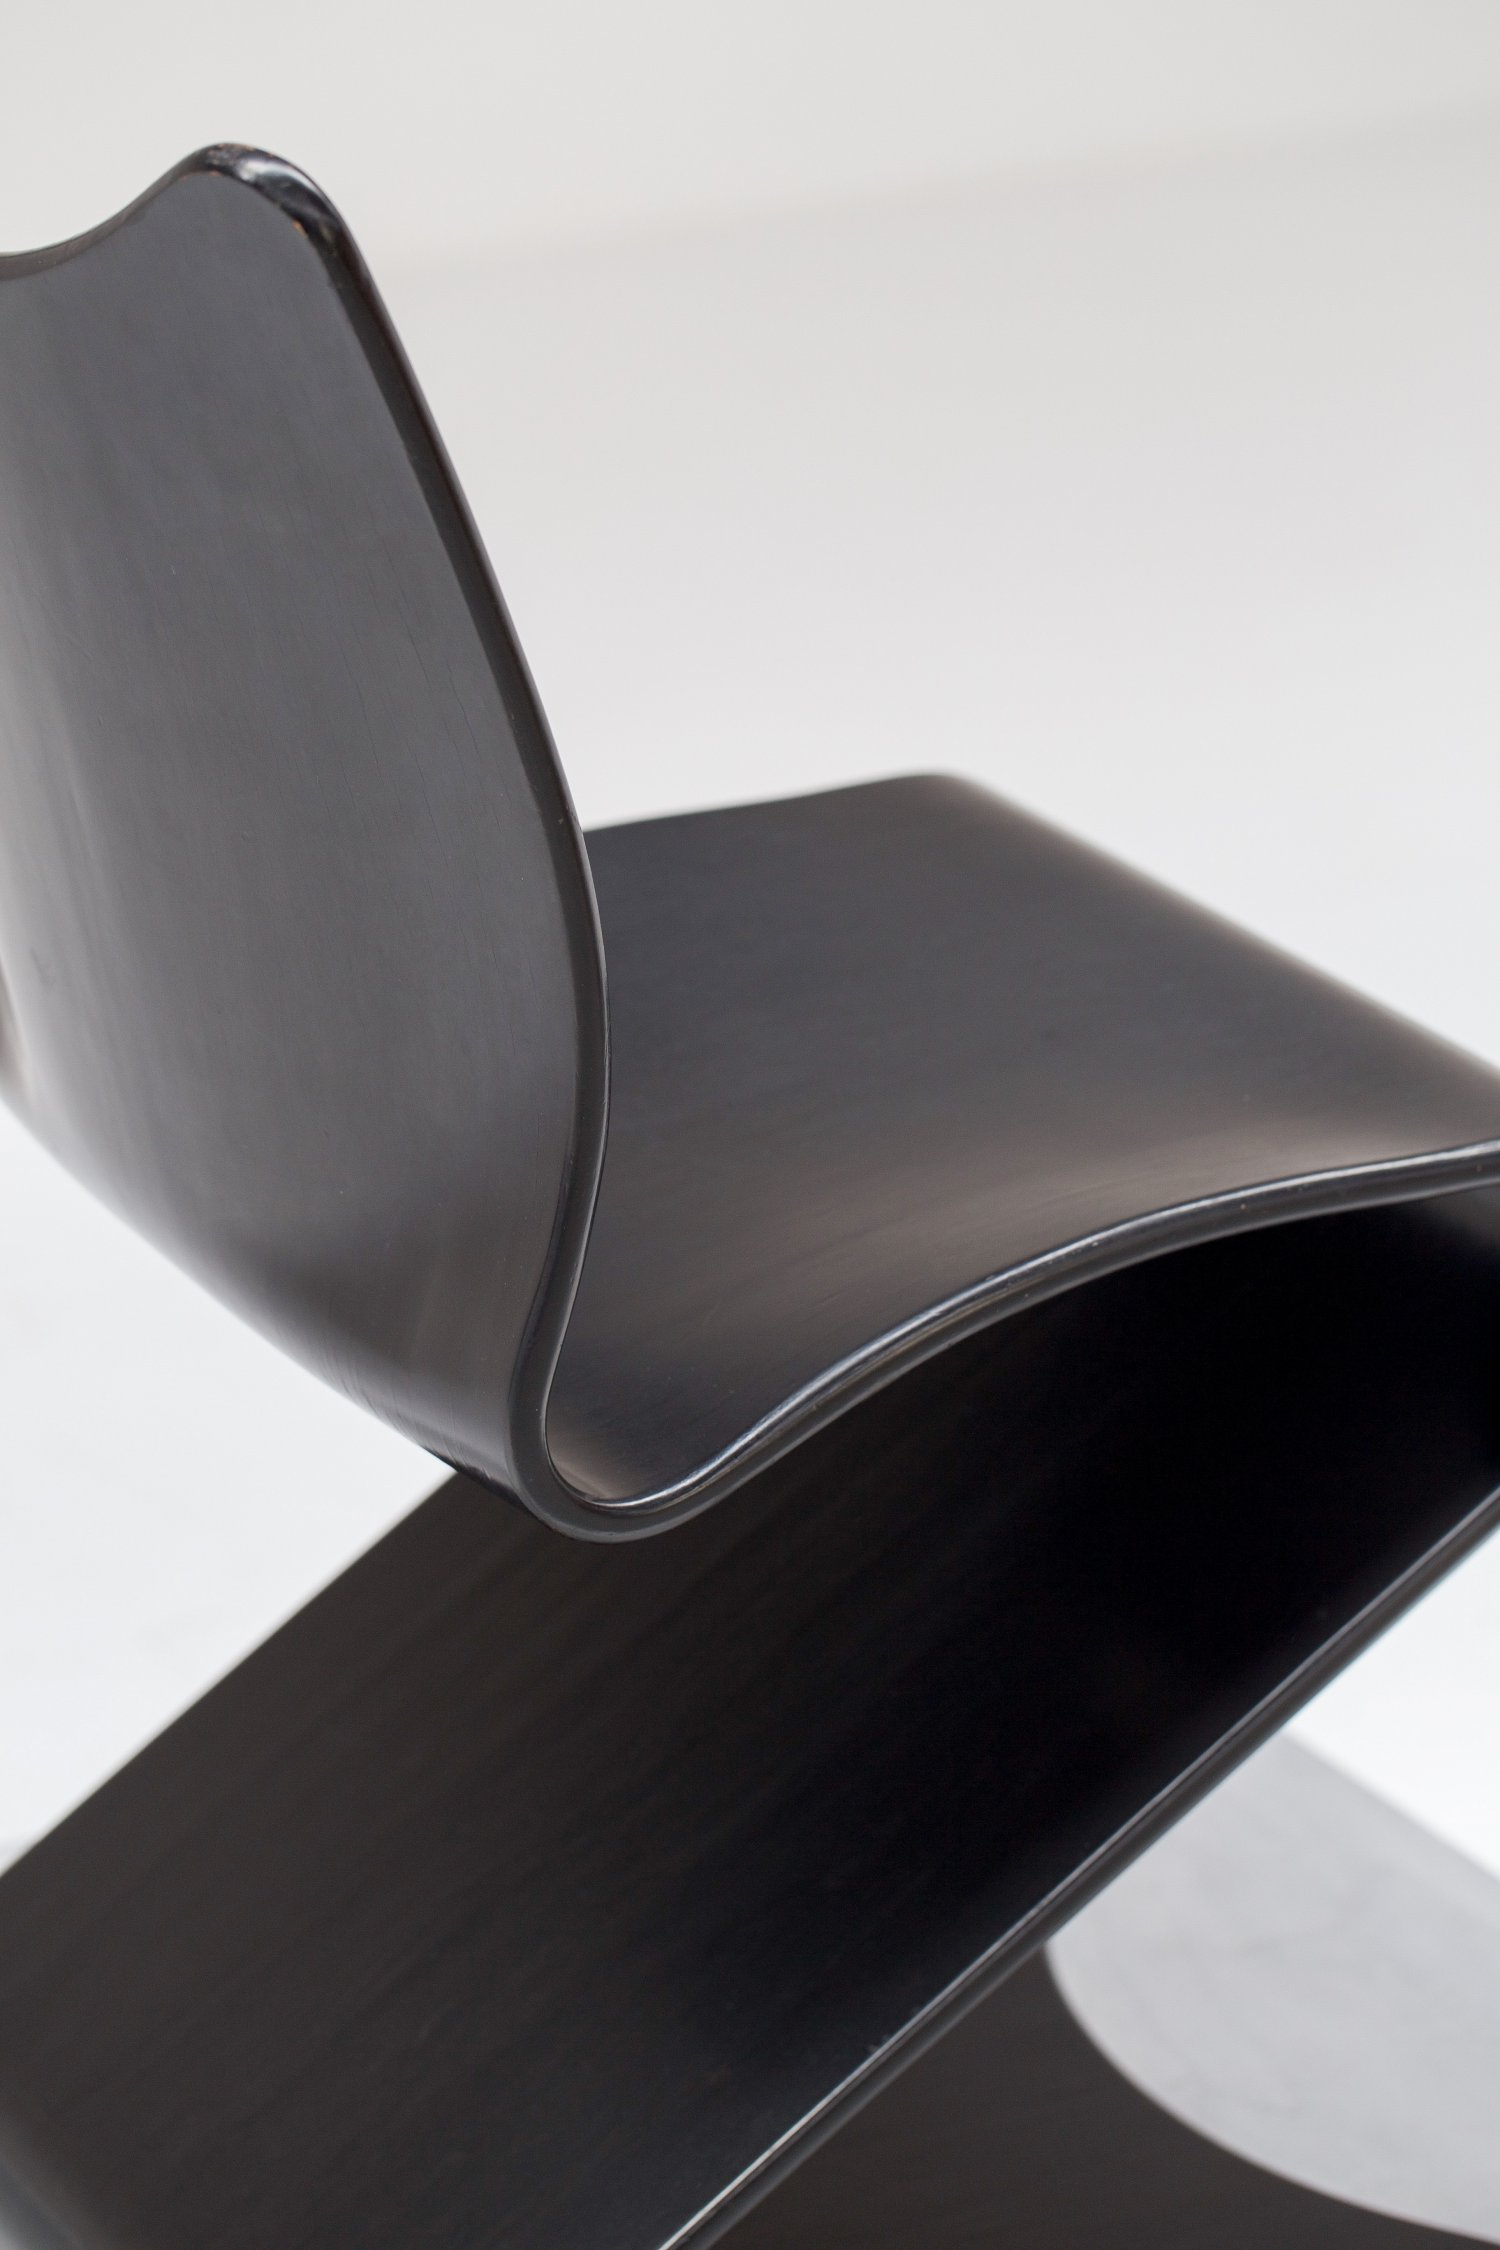 panton s chair recommended chairs for lower back pain 275 by verner vanlandschoote